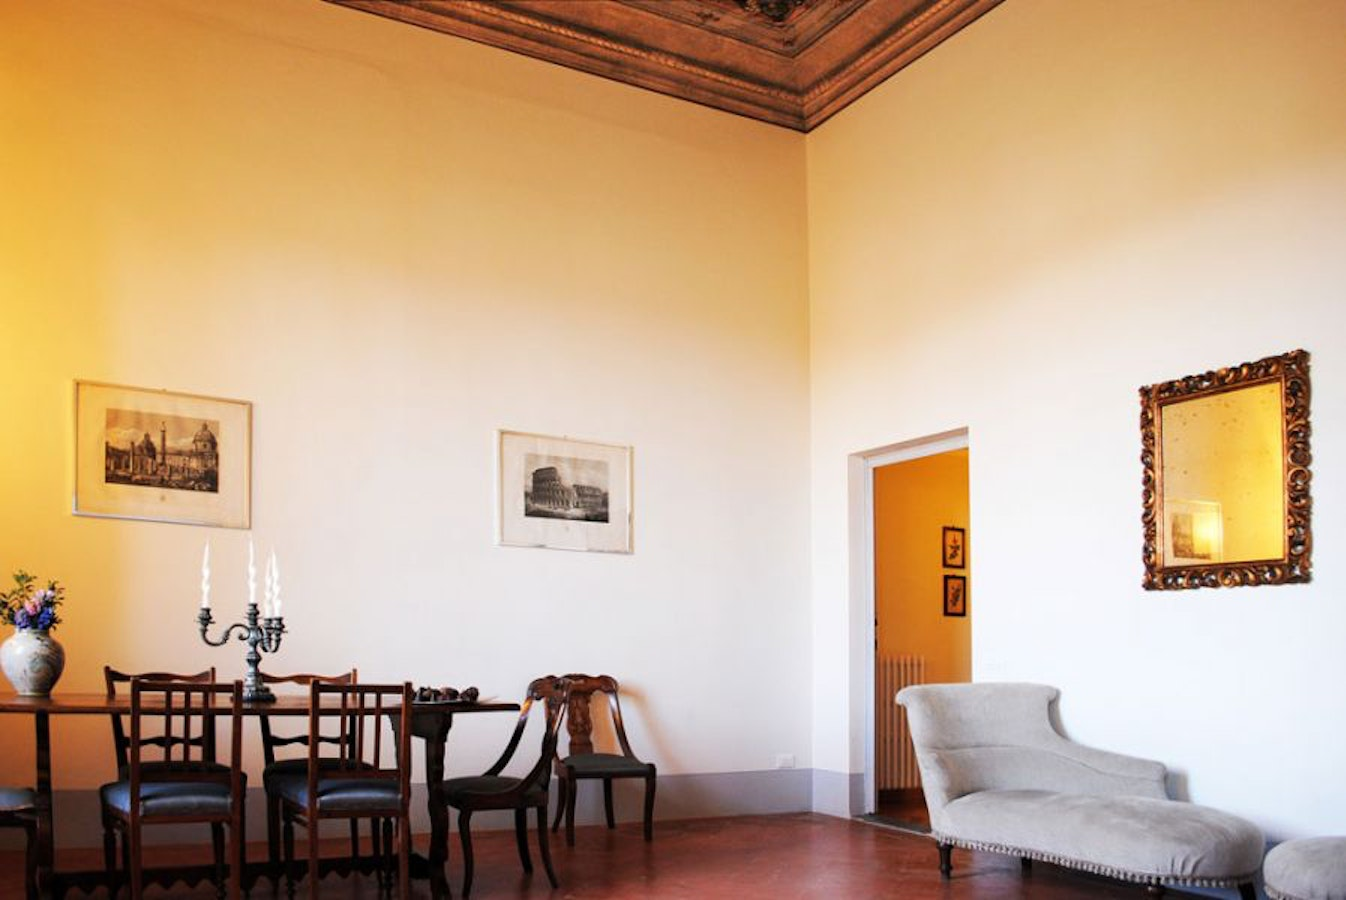 Serristori apartments comfortable apartments in florence for Florence apartments